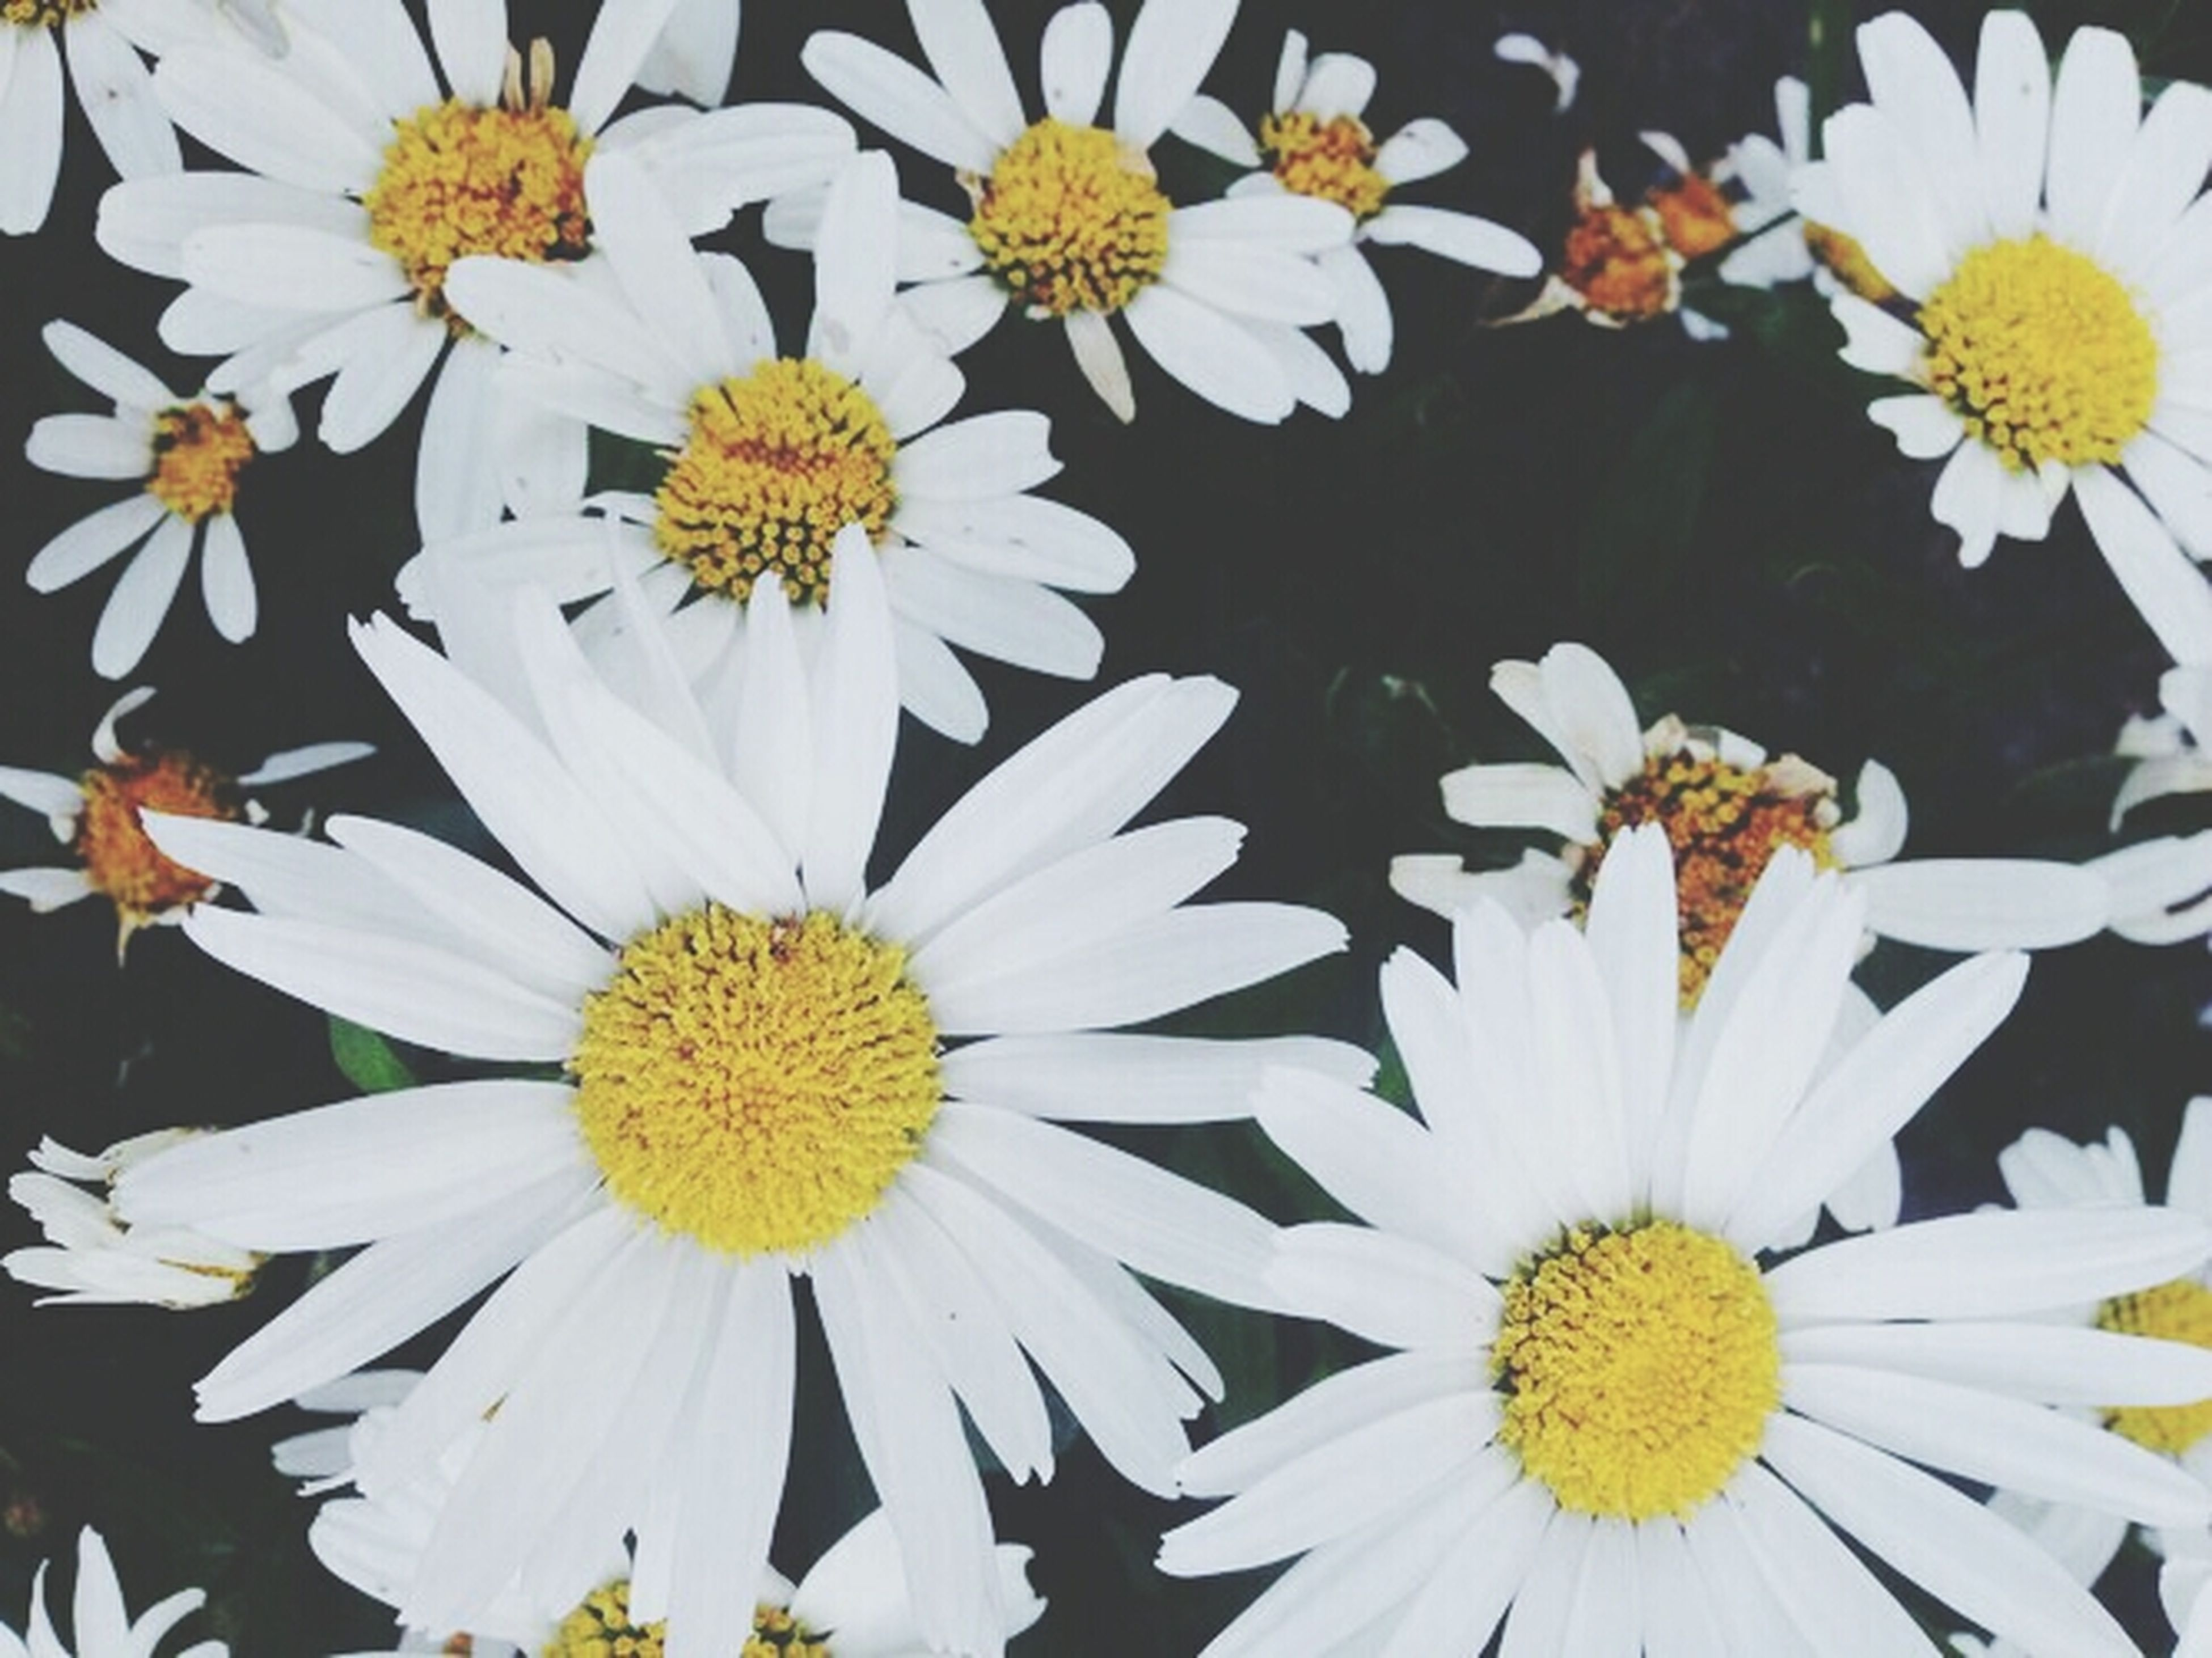 flower, petal, freshness, flower head, fragility, yellow, daisy, pollen, beauty in nature, white color, blooming, nature, growth, high angle view, plant, close-up, no people, in bloom, day, outdoors